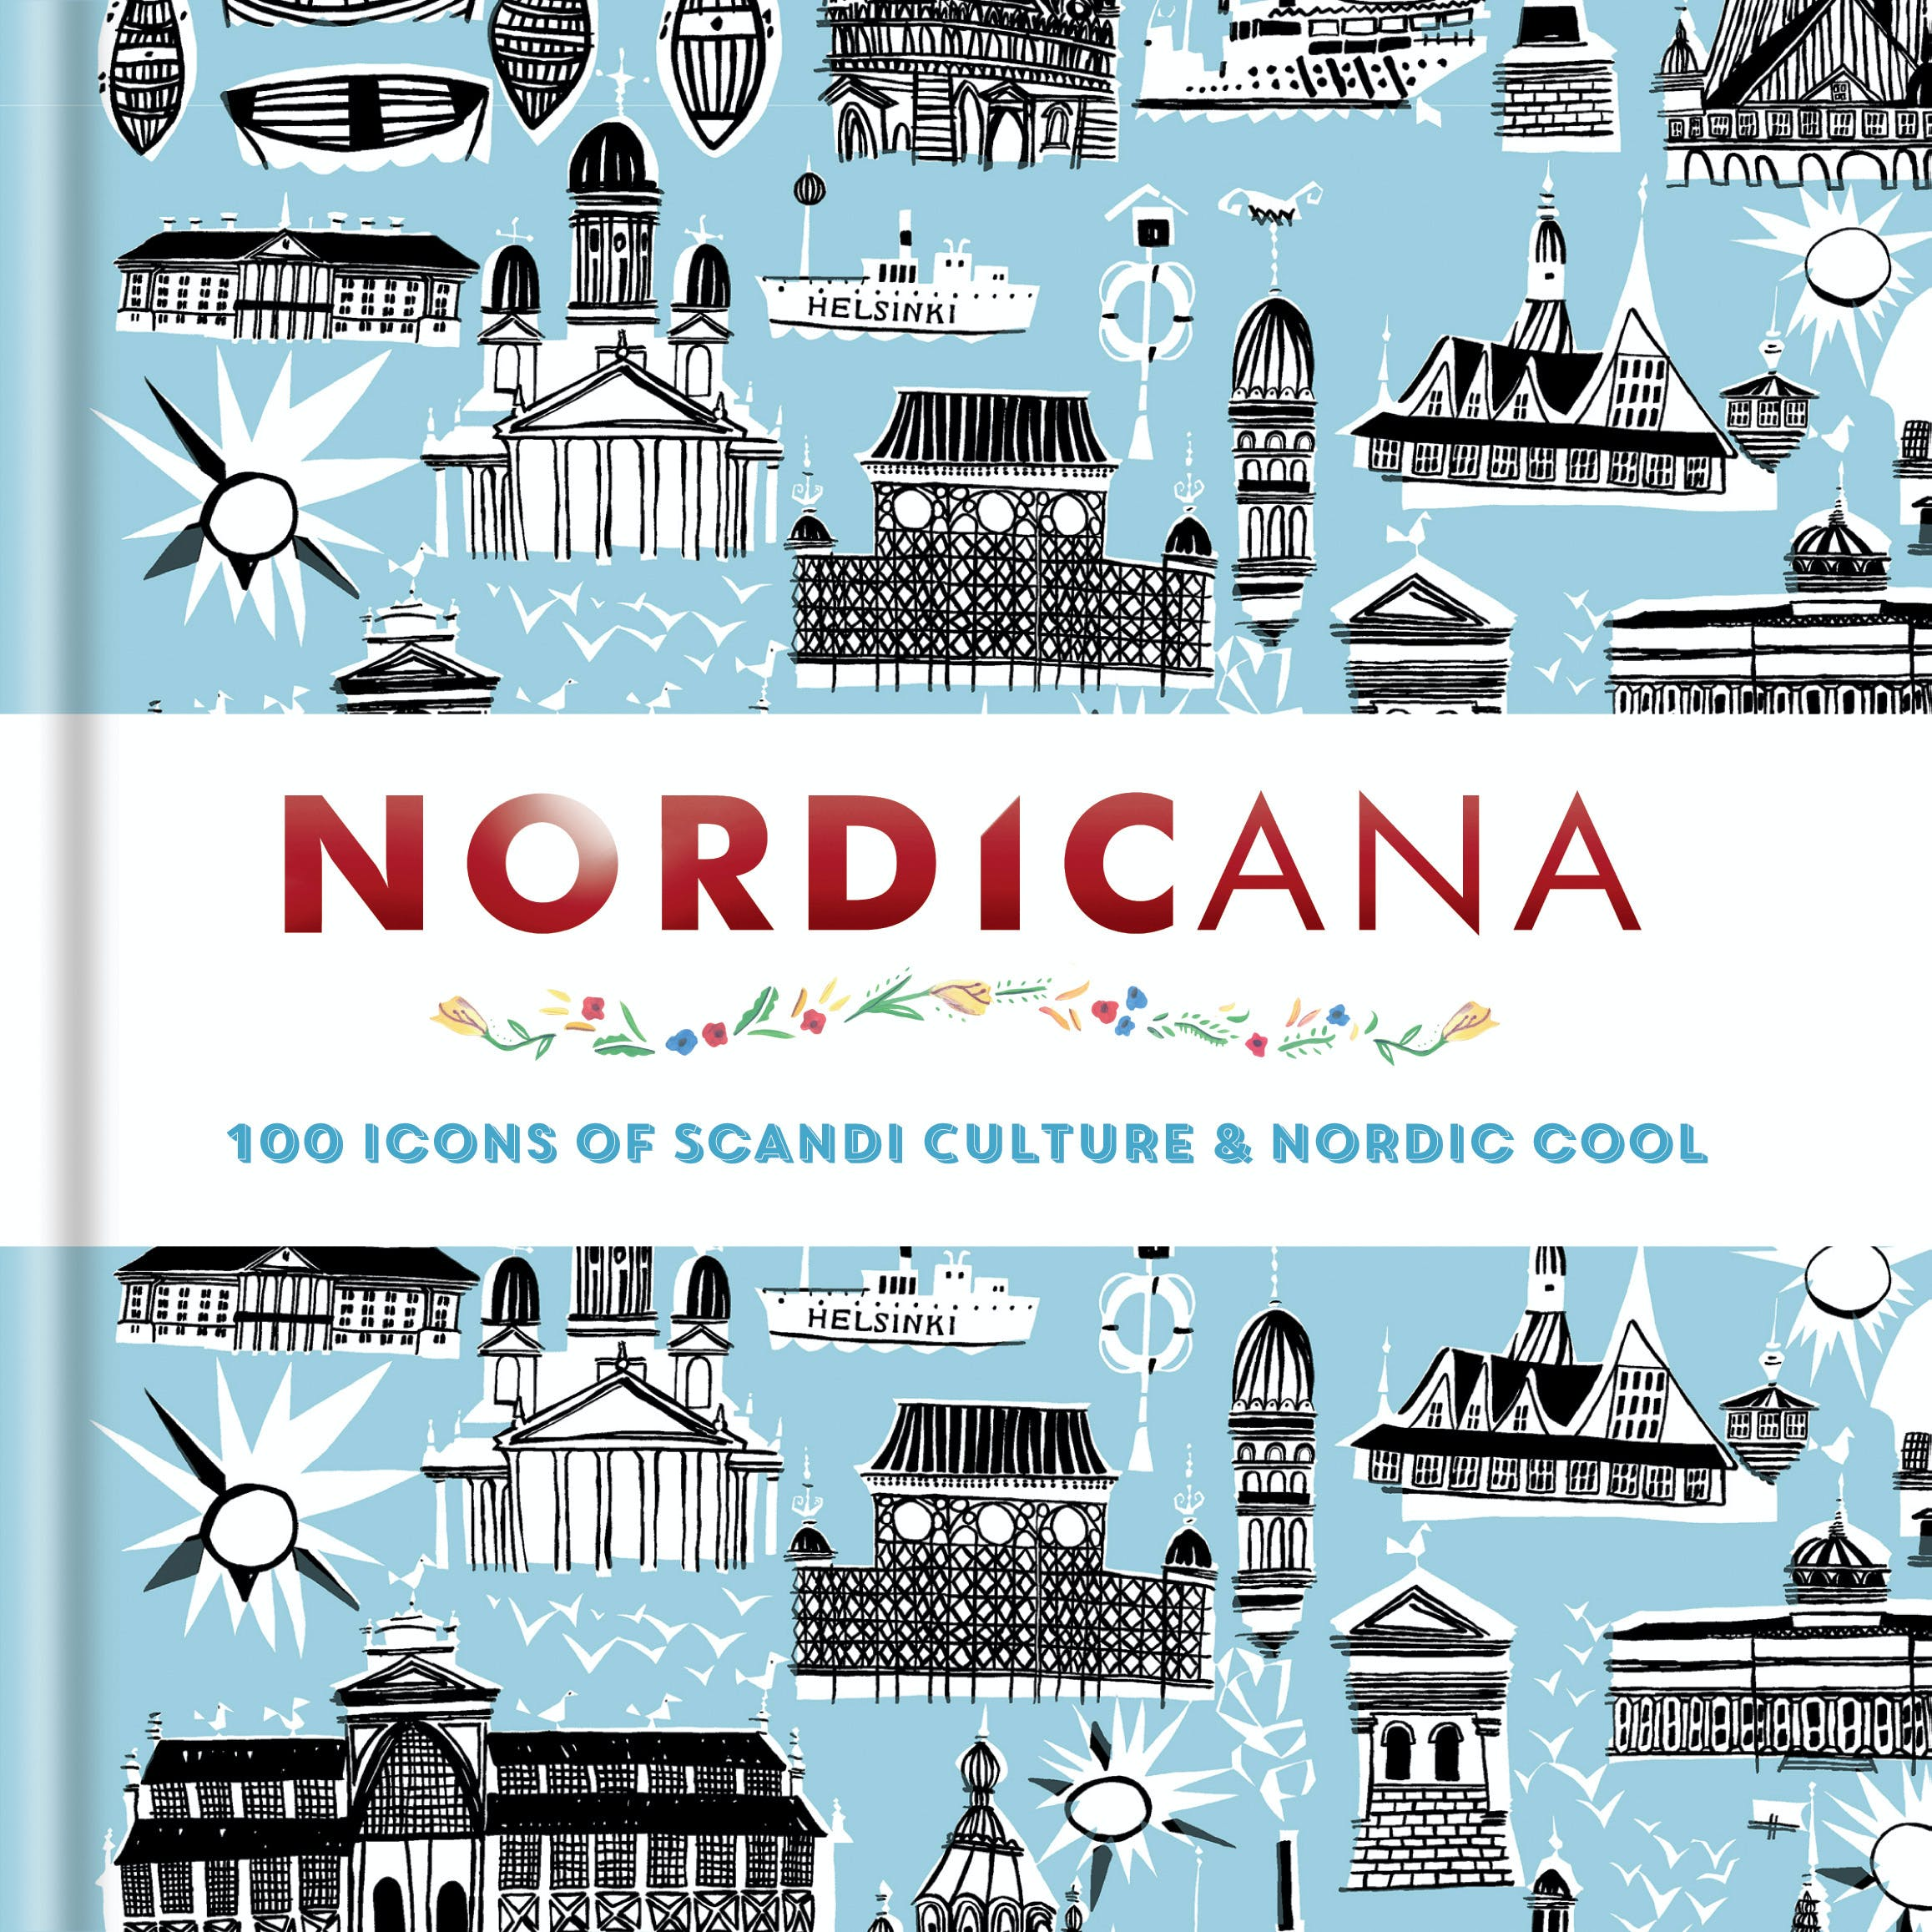 Nordicana: 100 Icons of Scandi Culture & Nordic Cool by